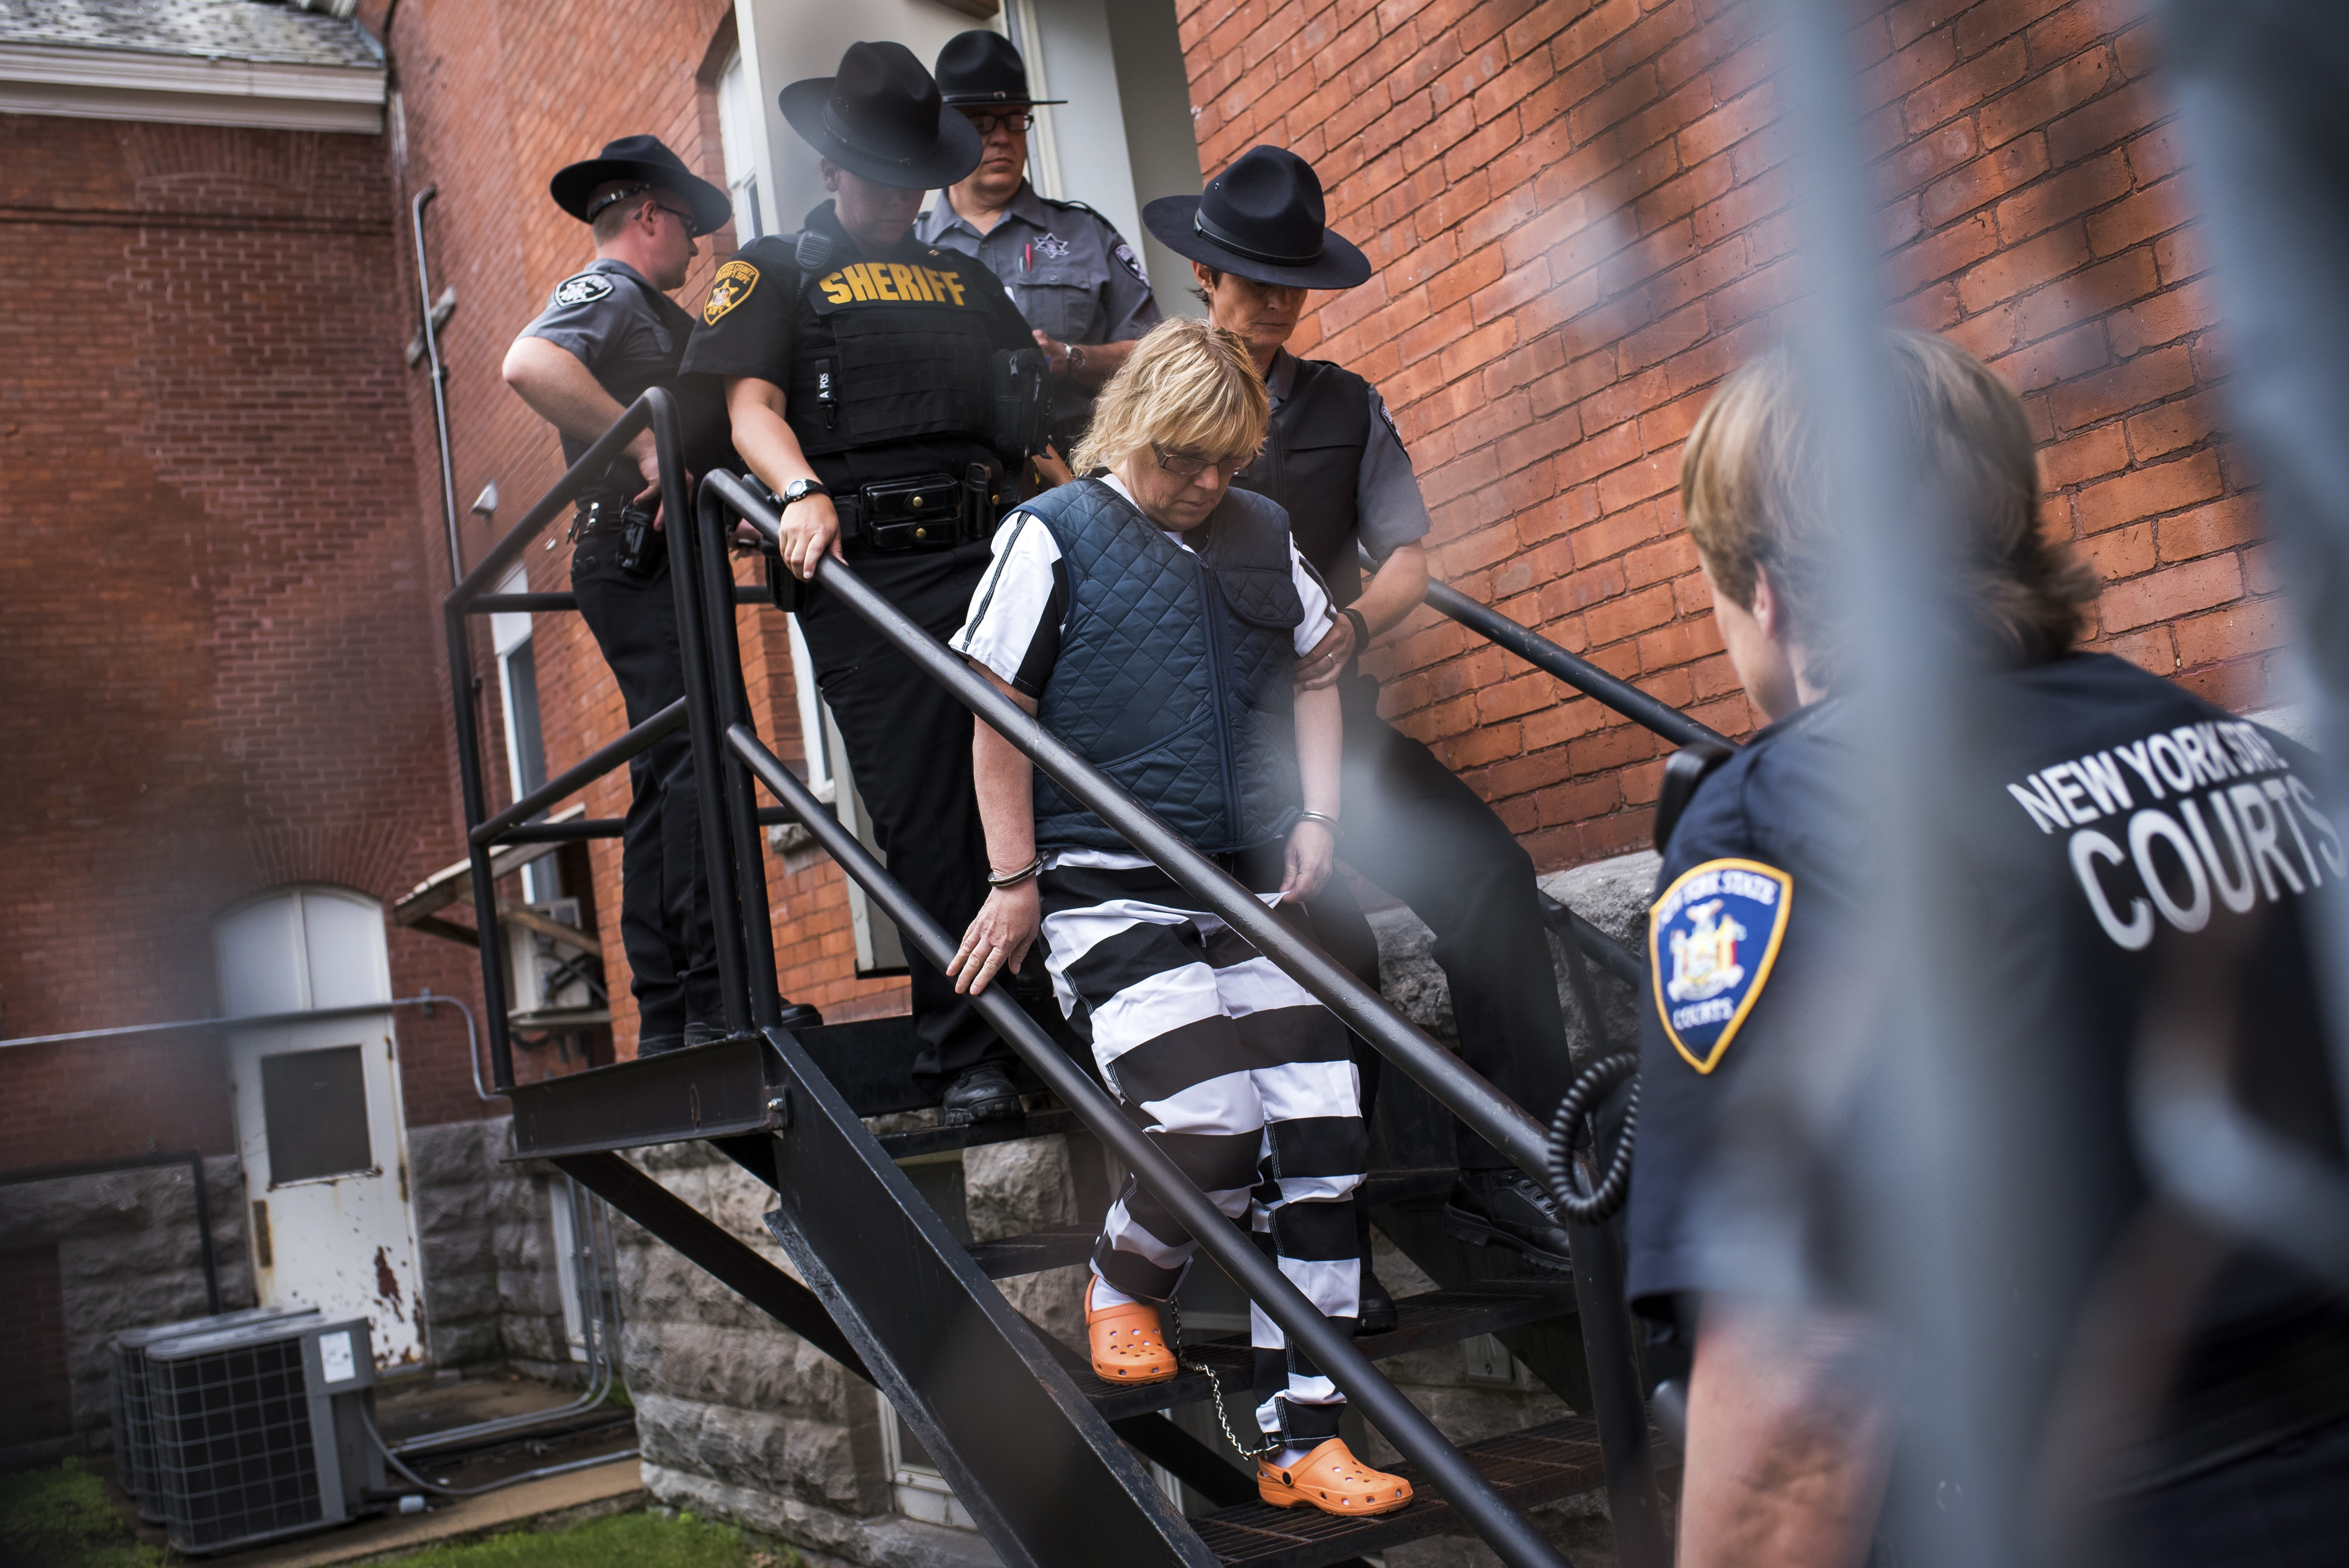 Joyce Mitchell, seen leaving a court hearing in Plattsburgh on June 15, was a supervisor in the Clinton Correctional Facility's tailor shop when she began an emotional relationship with David Sweat.